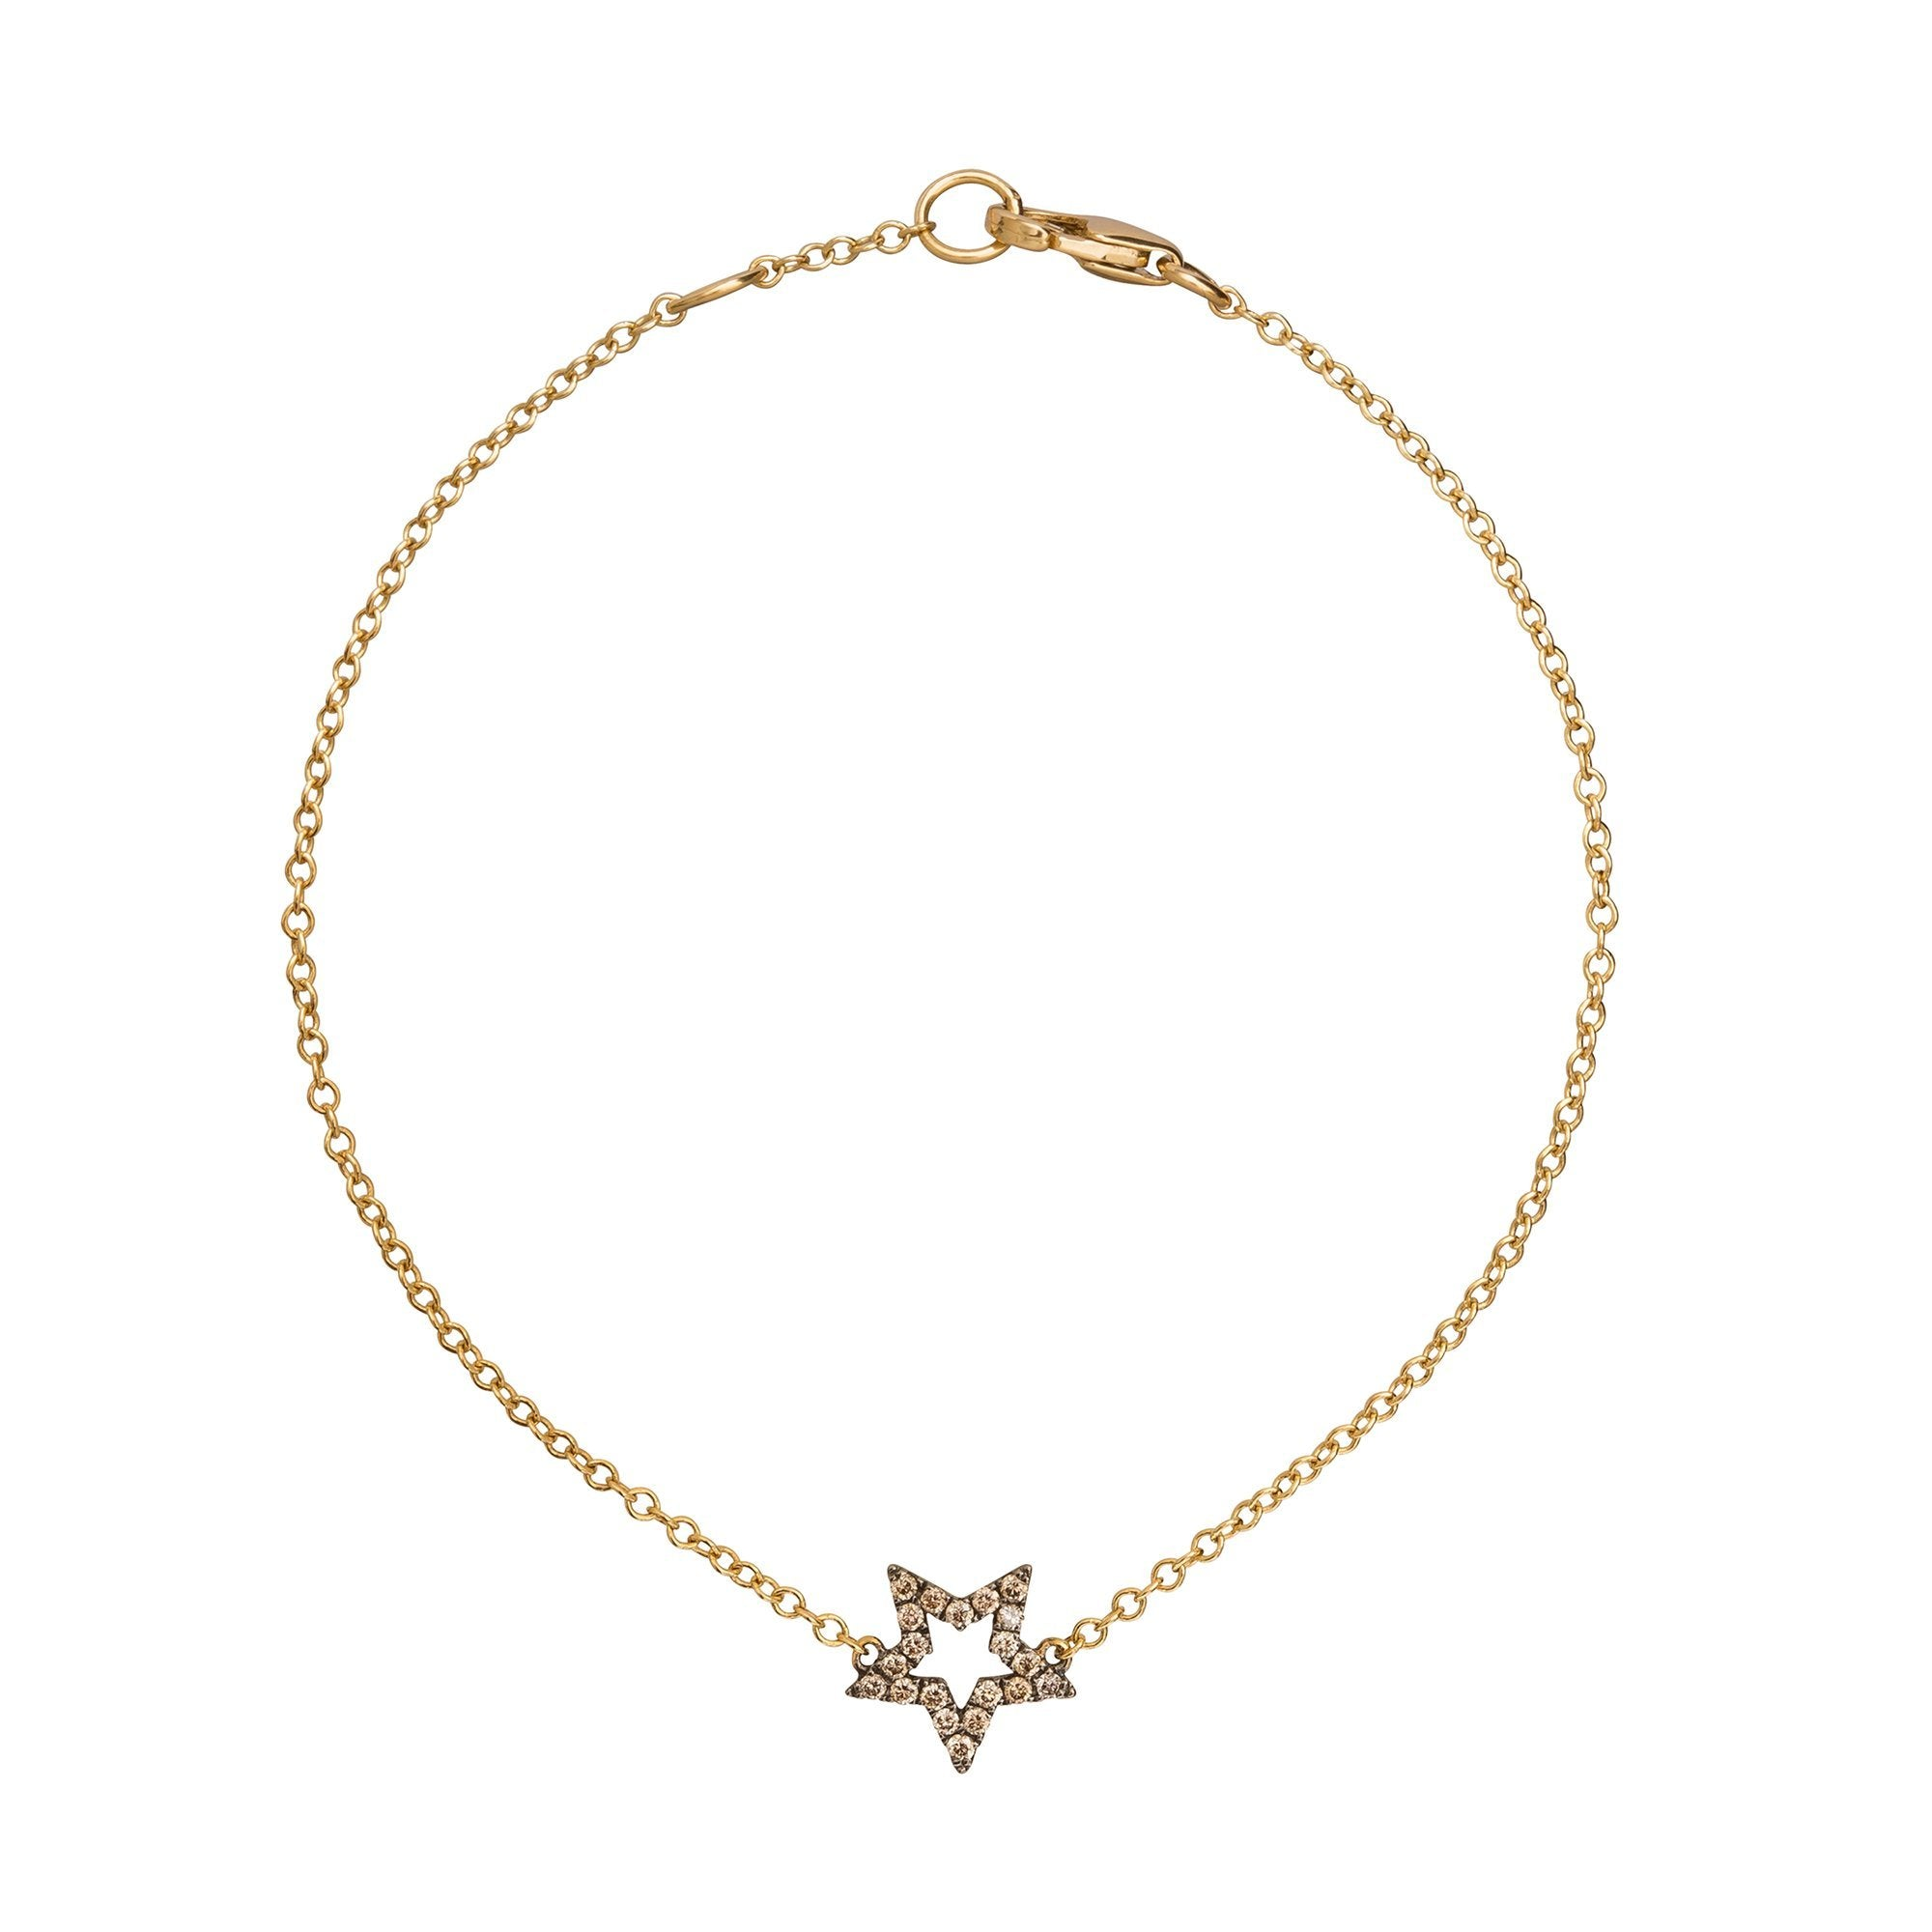 Rhodium Star Charm Bracelet - Rosa de la Cruz - Bracelets | Broken English Jewelry